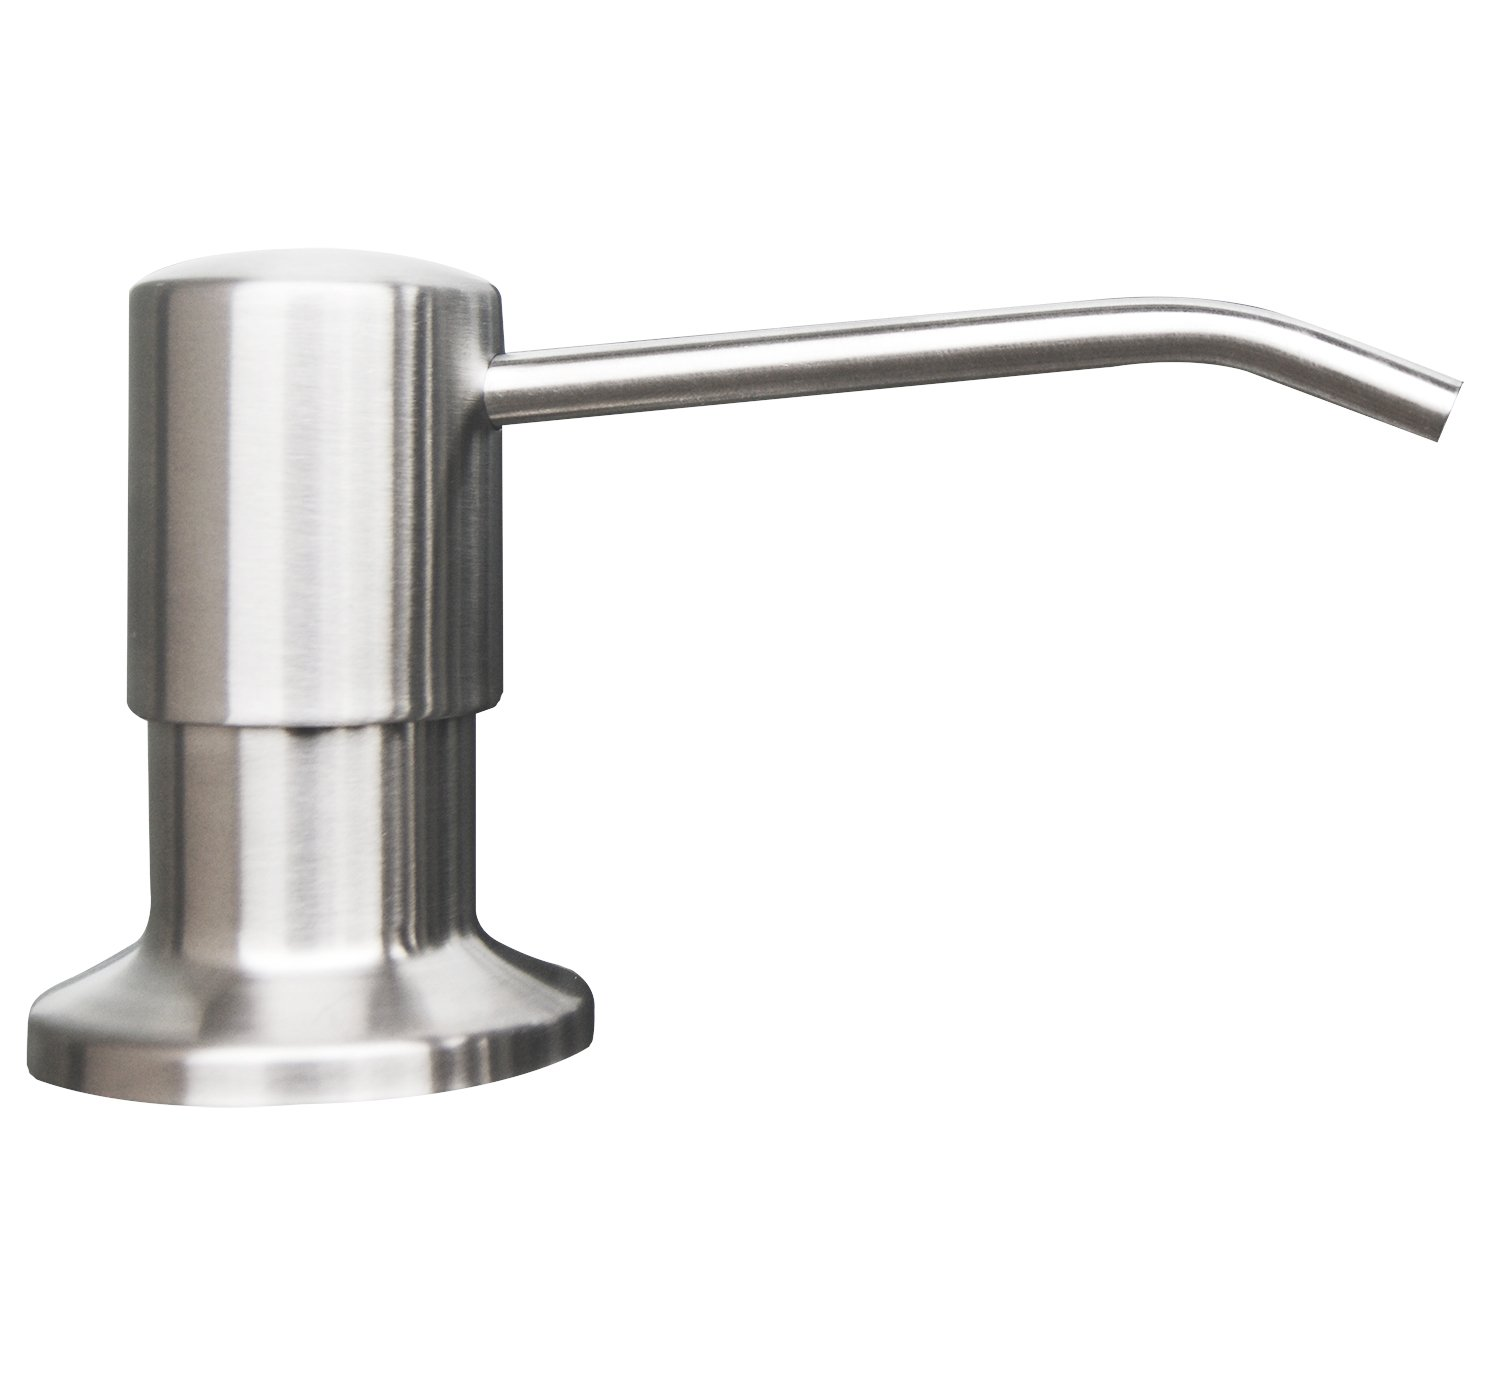 candyhome stainless steel kitchen sink countertop soap dispenser